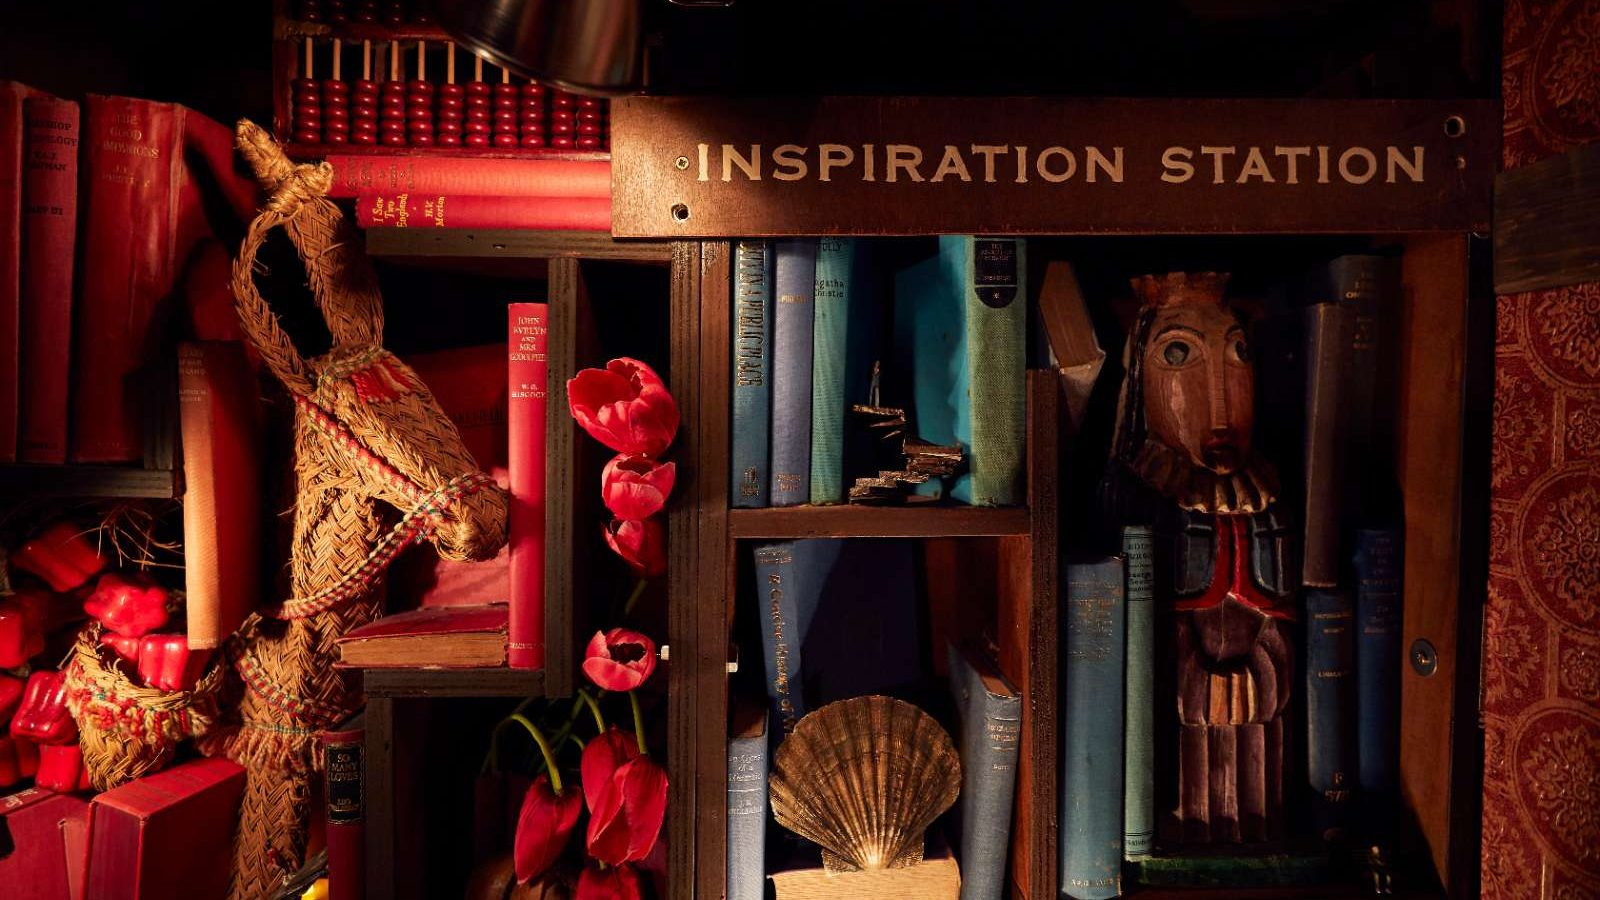 Close up of various bric-a-brac include books, flowers and ornaments on cupboard built into the wall. 'Inspiration Station' sign.